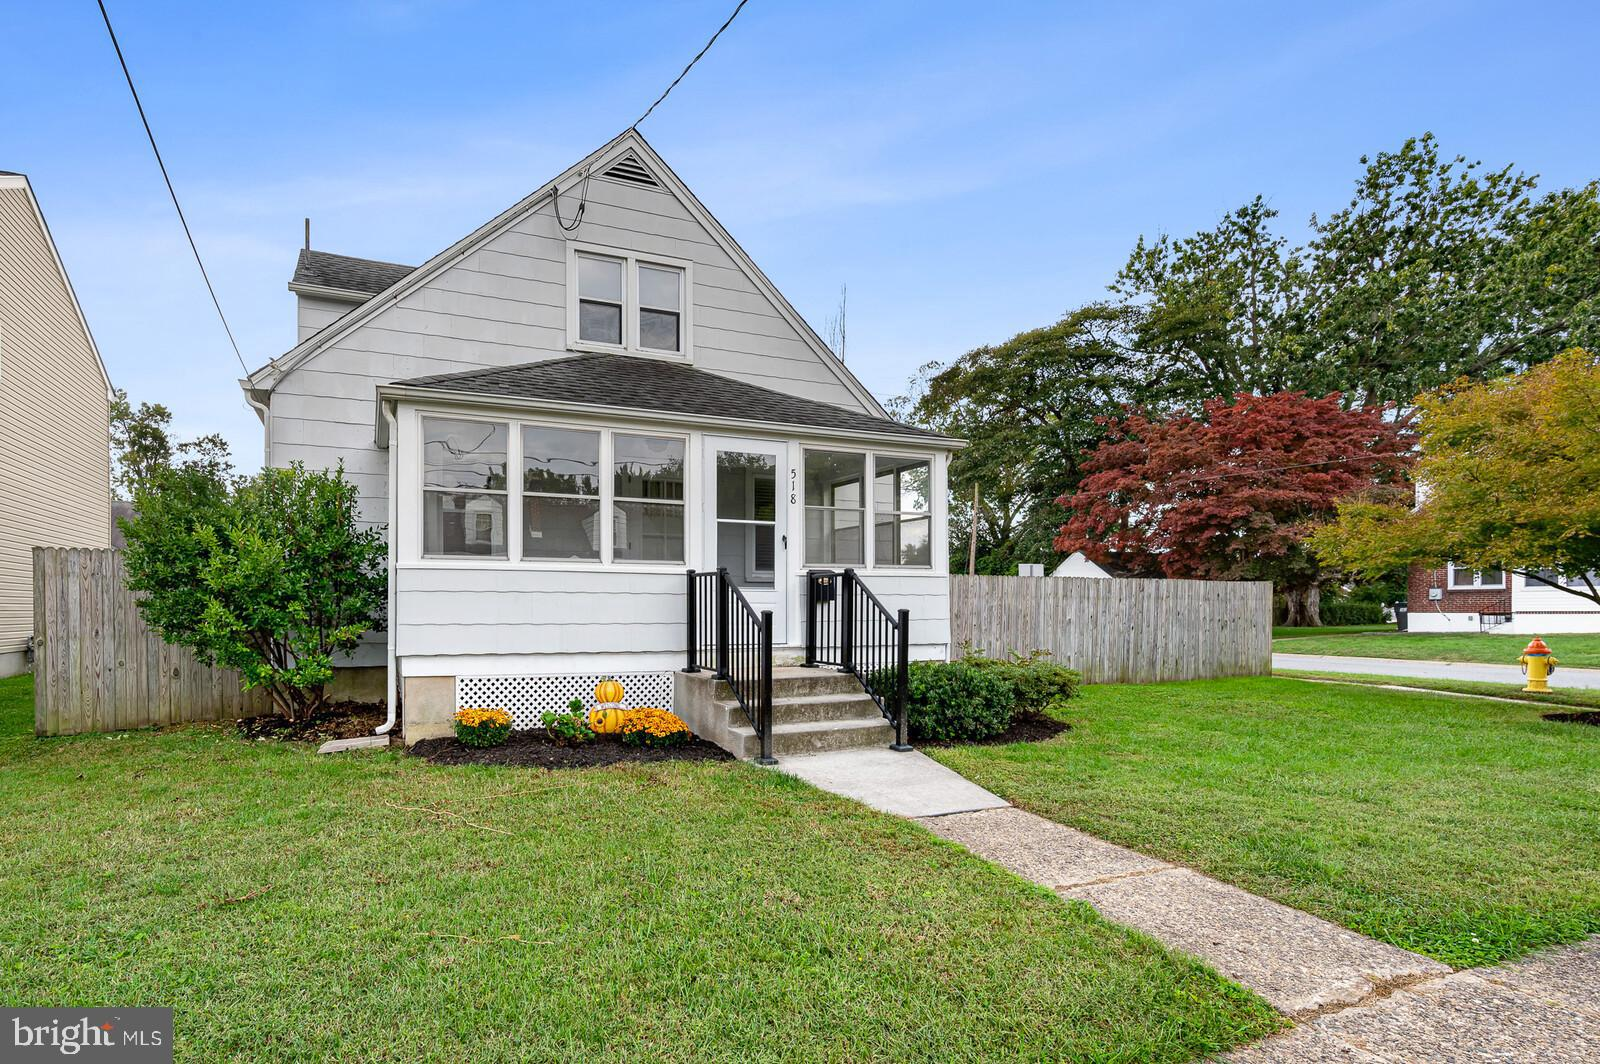 Welcome to 518 W Summit Ave in Elmhurst! This large corner lot home is move-in ready! Upon entering